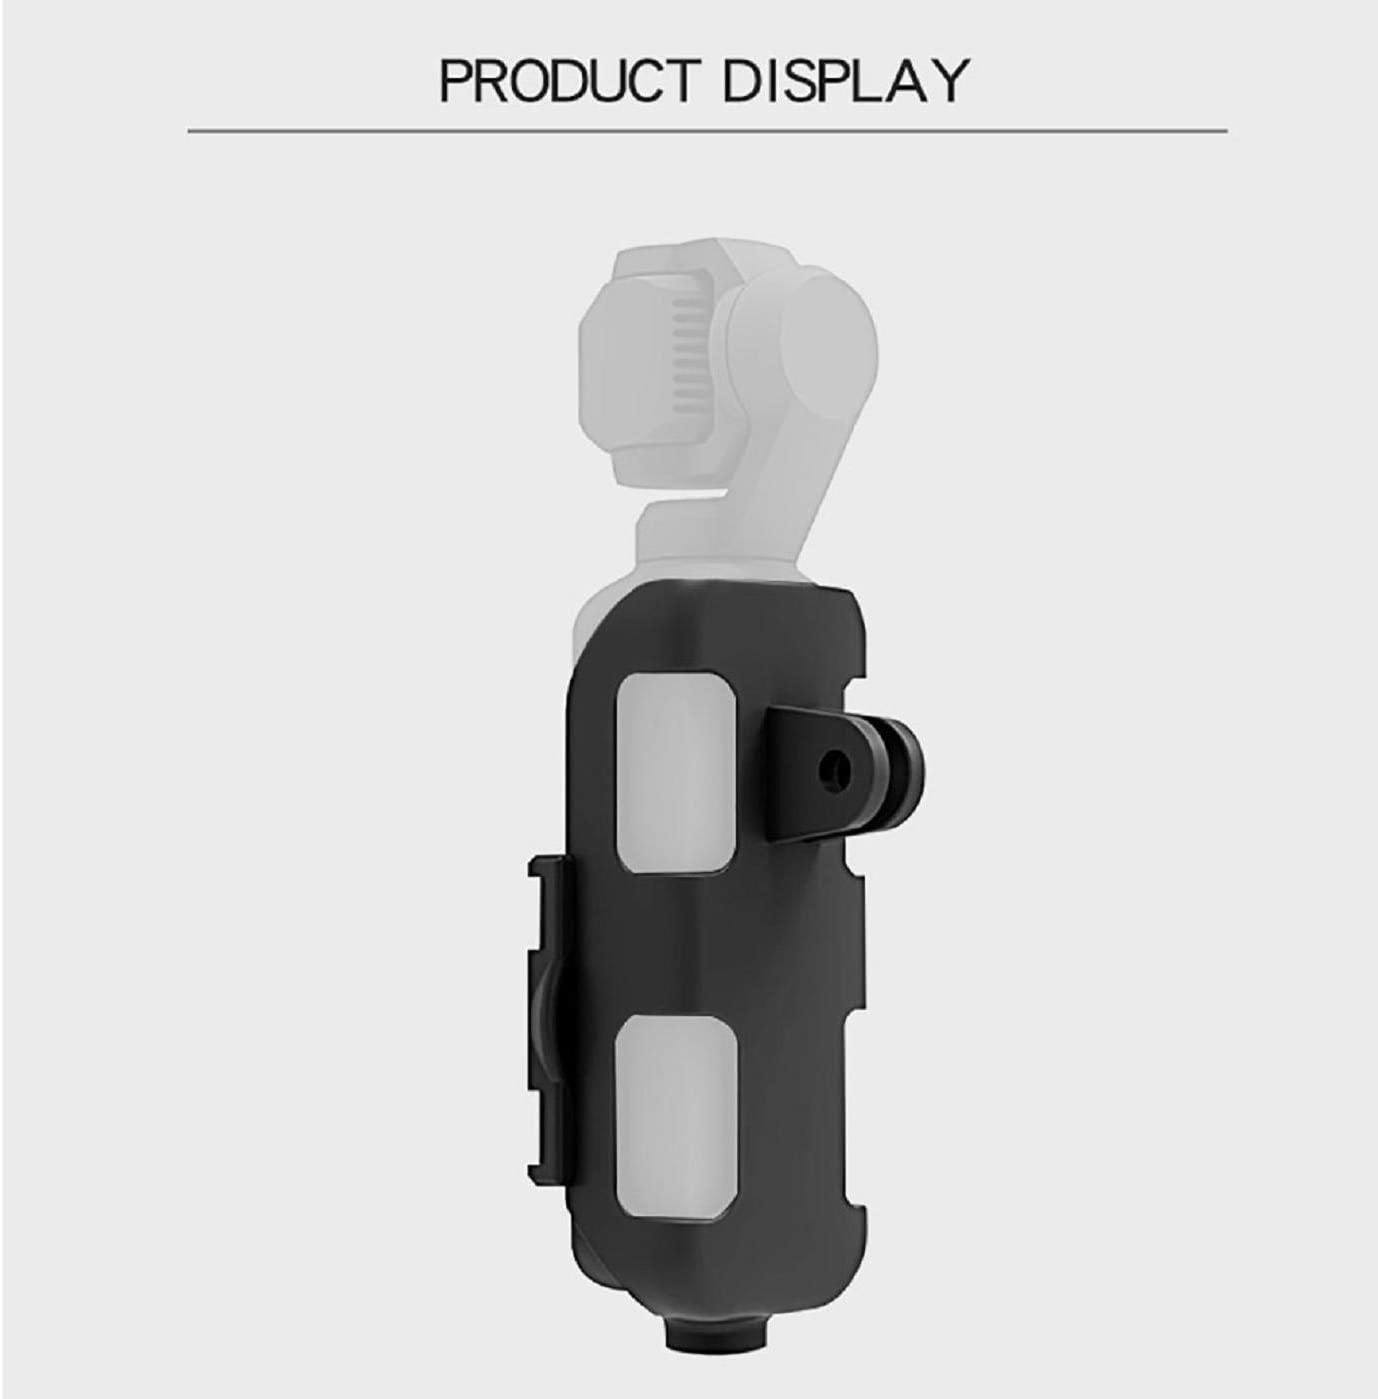 Cinhent Quick Release Buckle Snap Extension Bracket Compatible with DJI OSMO Pocket with 1//4 Motion Camera Interface